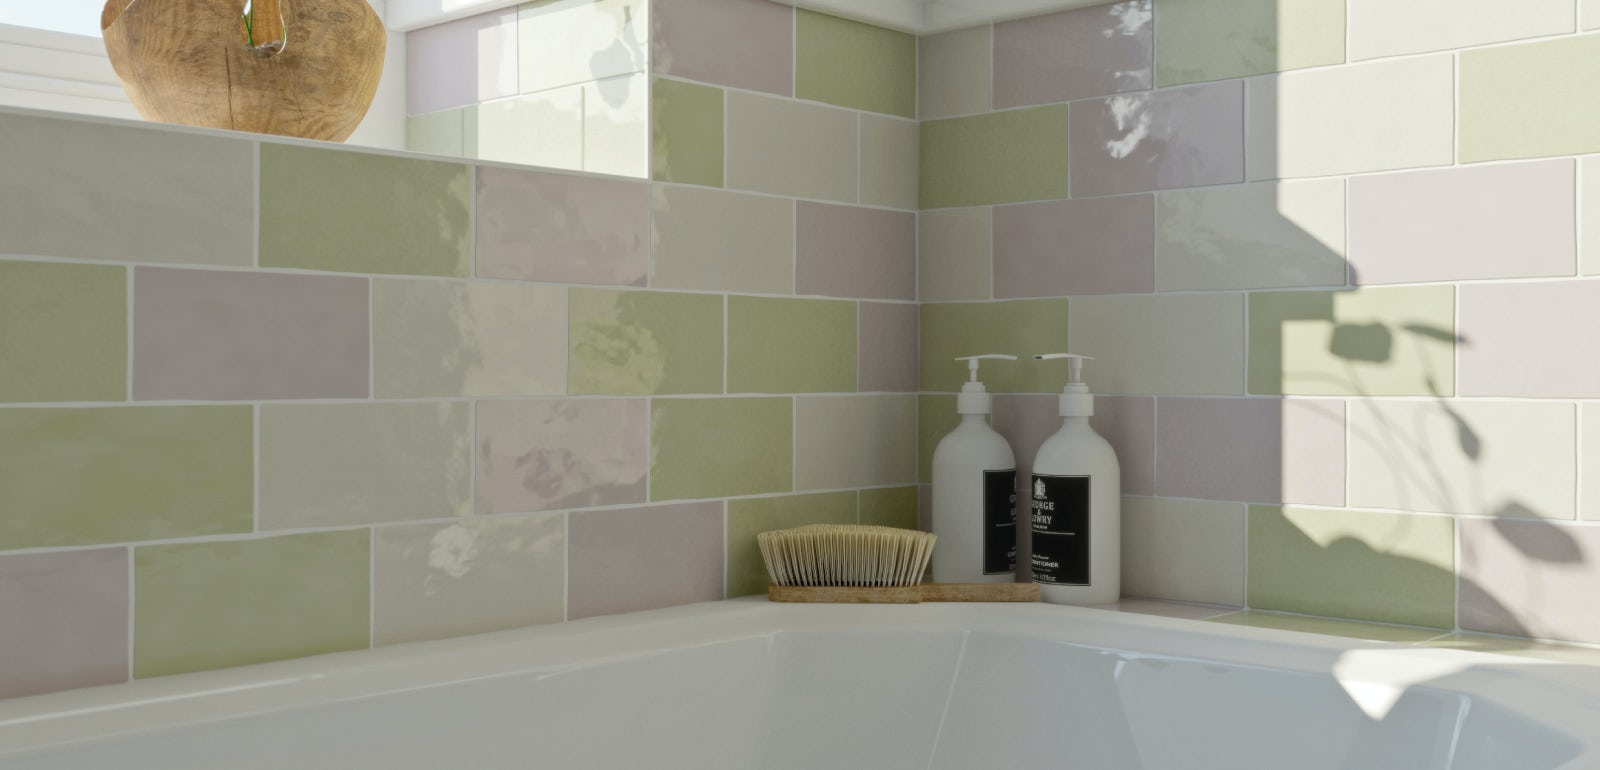 Introducing the Laura Ashley tile collection